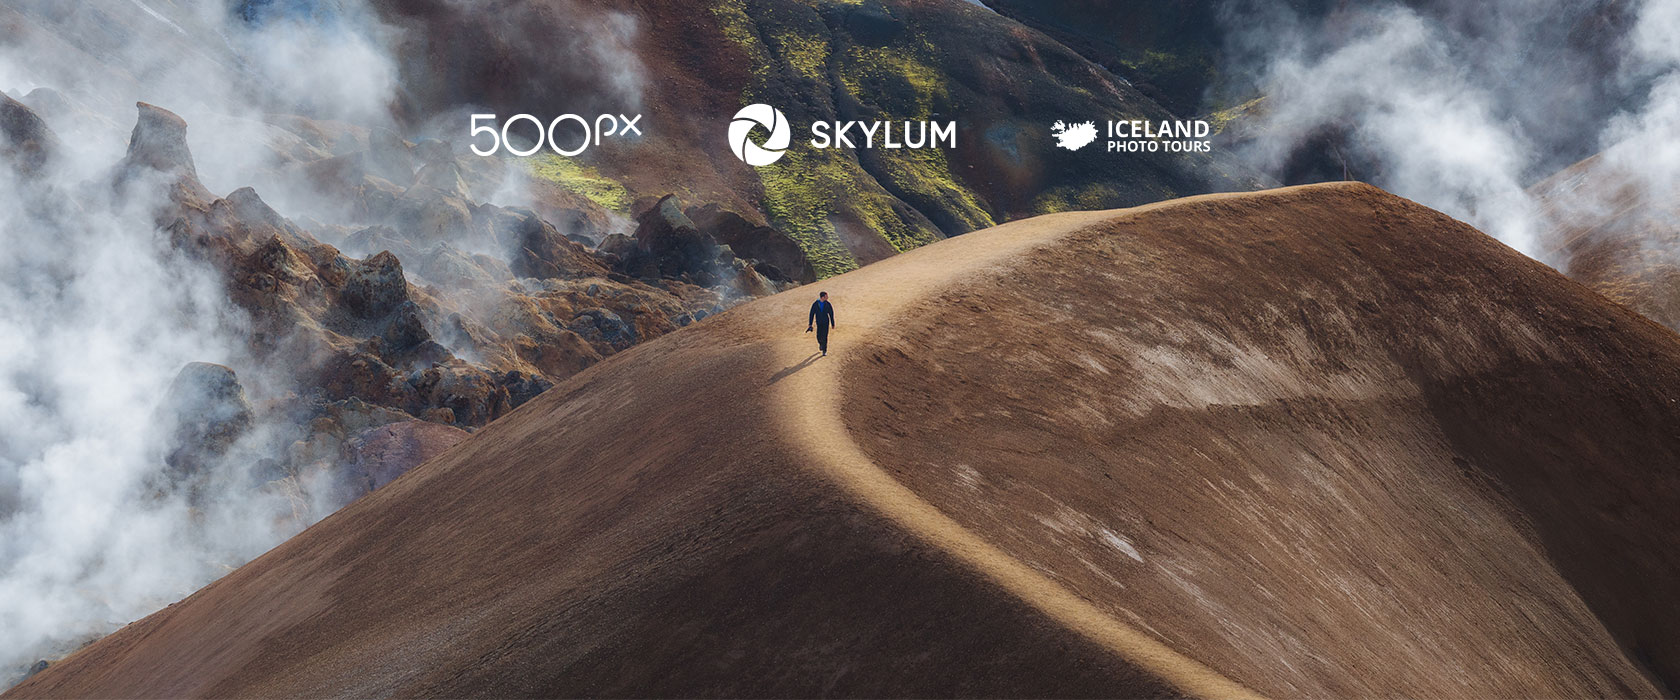 Win an epic photography trip with Skylum, Iceland Photo Tours + 500px Quests